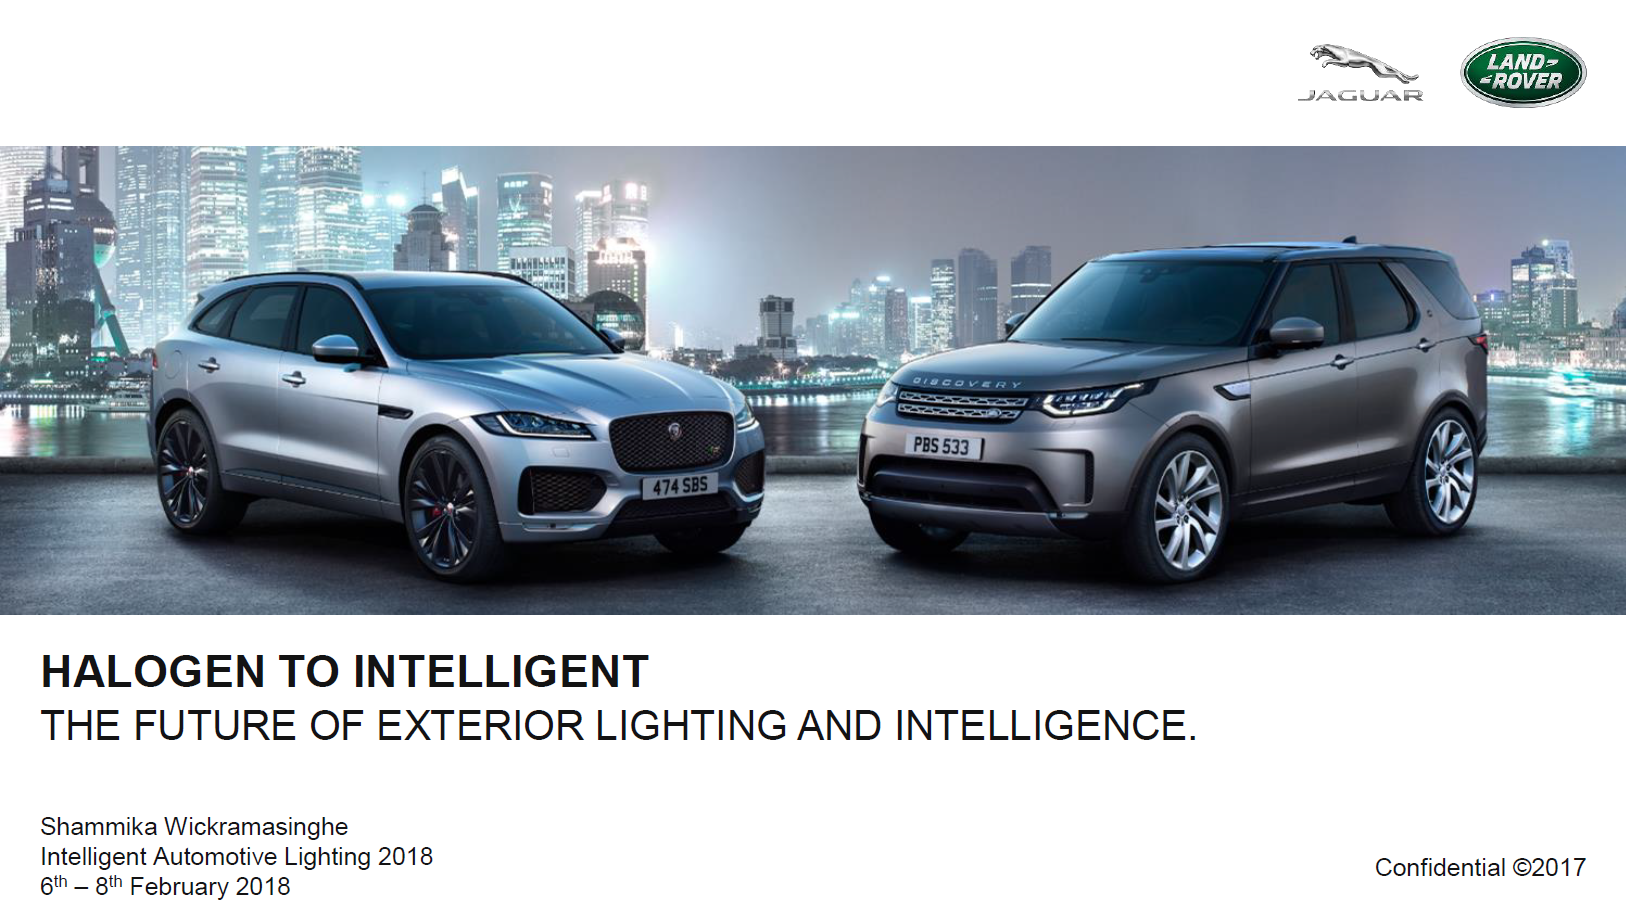 Jaguar Land Rover Presentation: Halogen to Intelligent - The Evolution of Lighting Technology